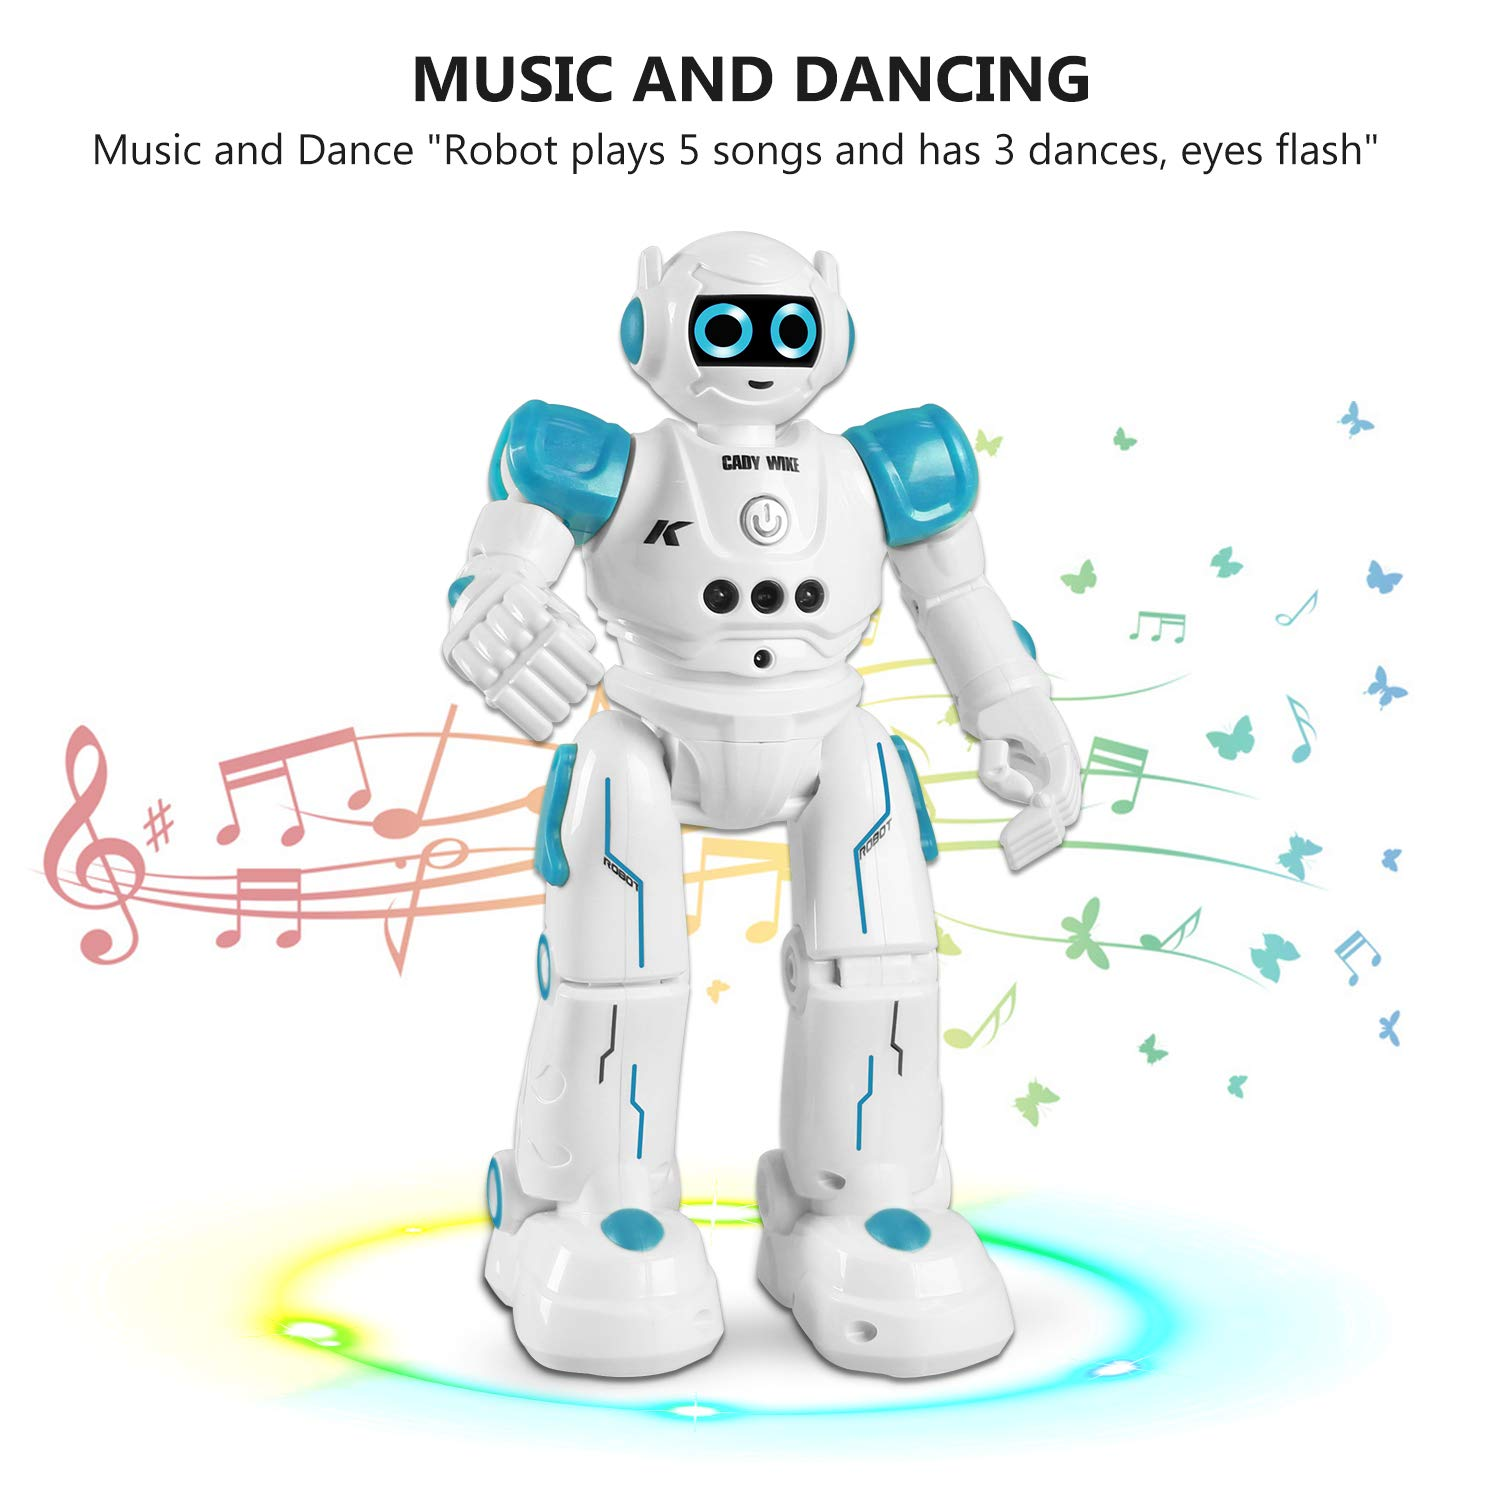 IHBUDS Robot Toy for Kids, Smart Robot Kit with Remote Control & Gesture Control, Perfect Robotics Gifts for Boys Girls Learning Programmable Walking Dancing Singing (Blue) by IHBUDS (Image #3)